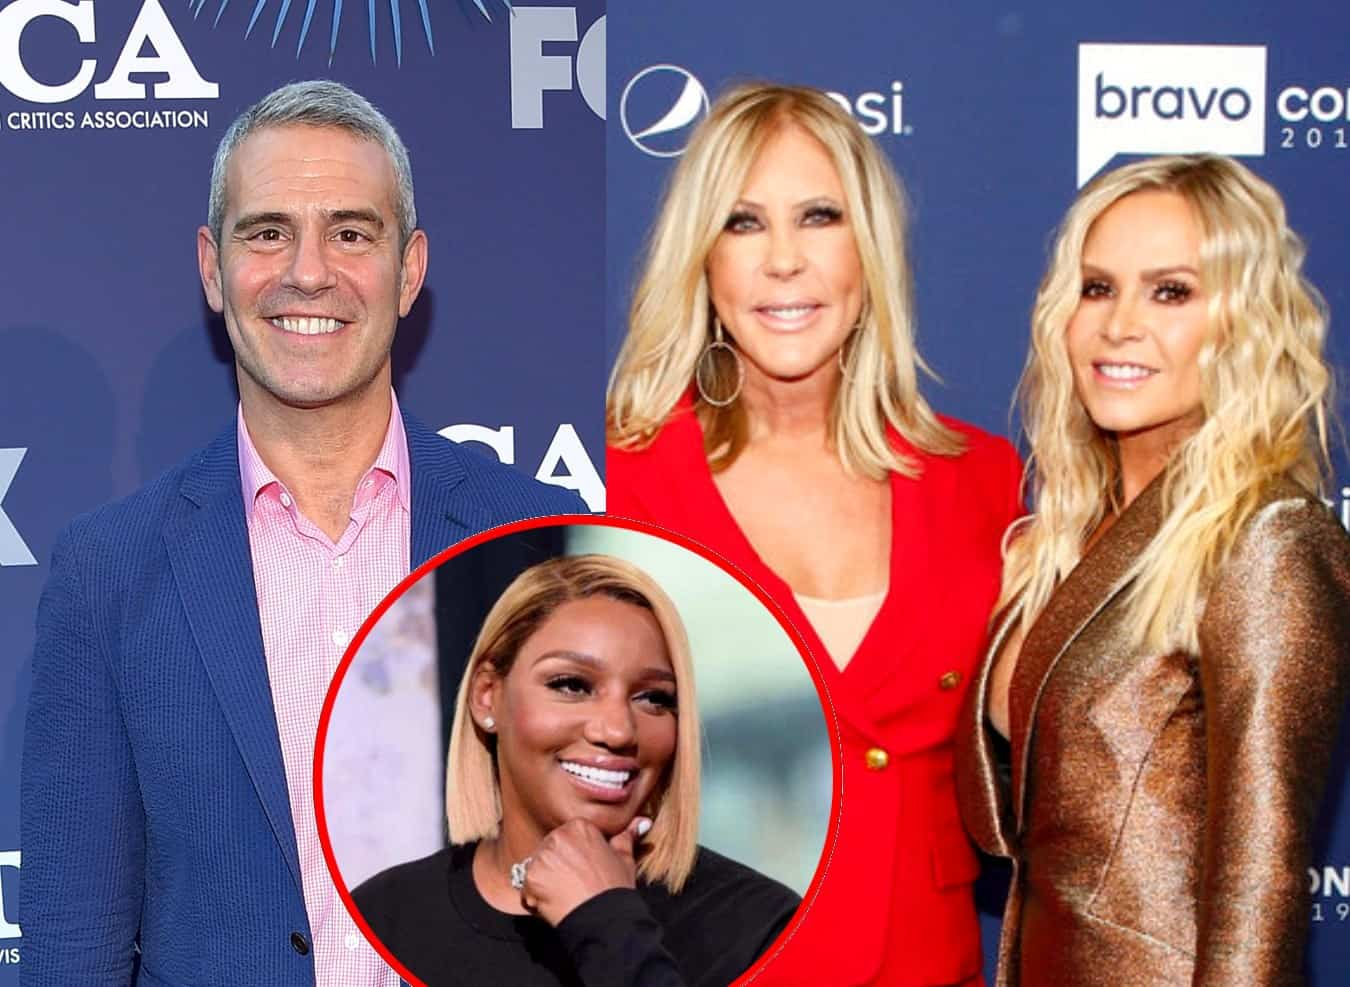 Bravo's Andy Cohen Reveals Real Reason Tamra Judge and Vicki Gunvalson Were Let Go From RHOC as He Denies it Had to Do With Age, Plus He Responds to Nene Leakes' Quitting Rumors